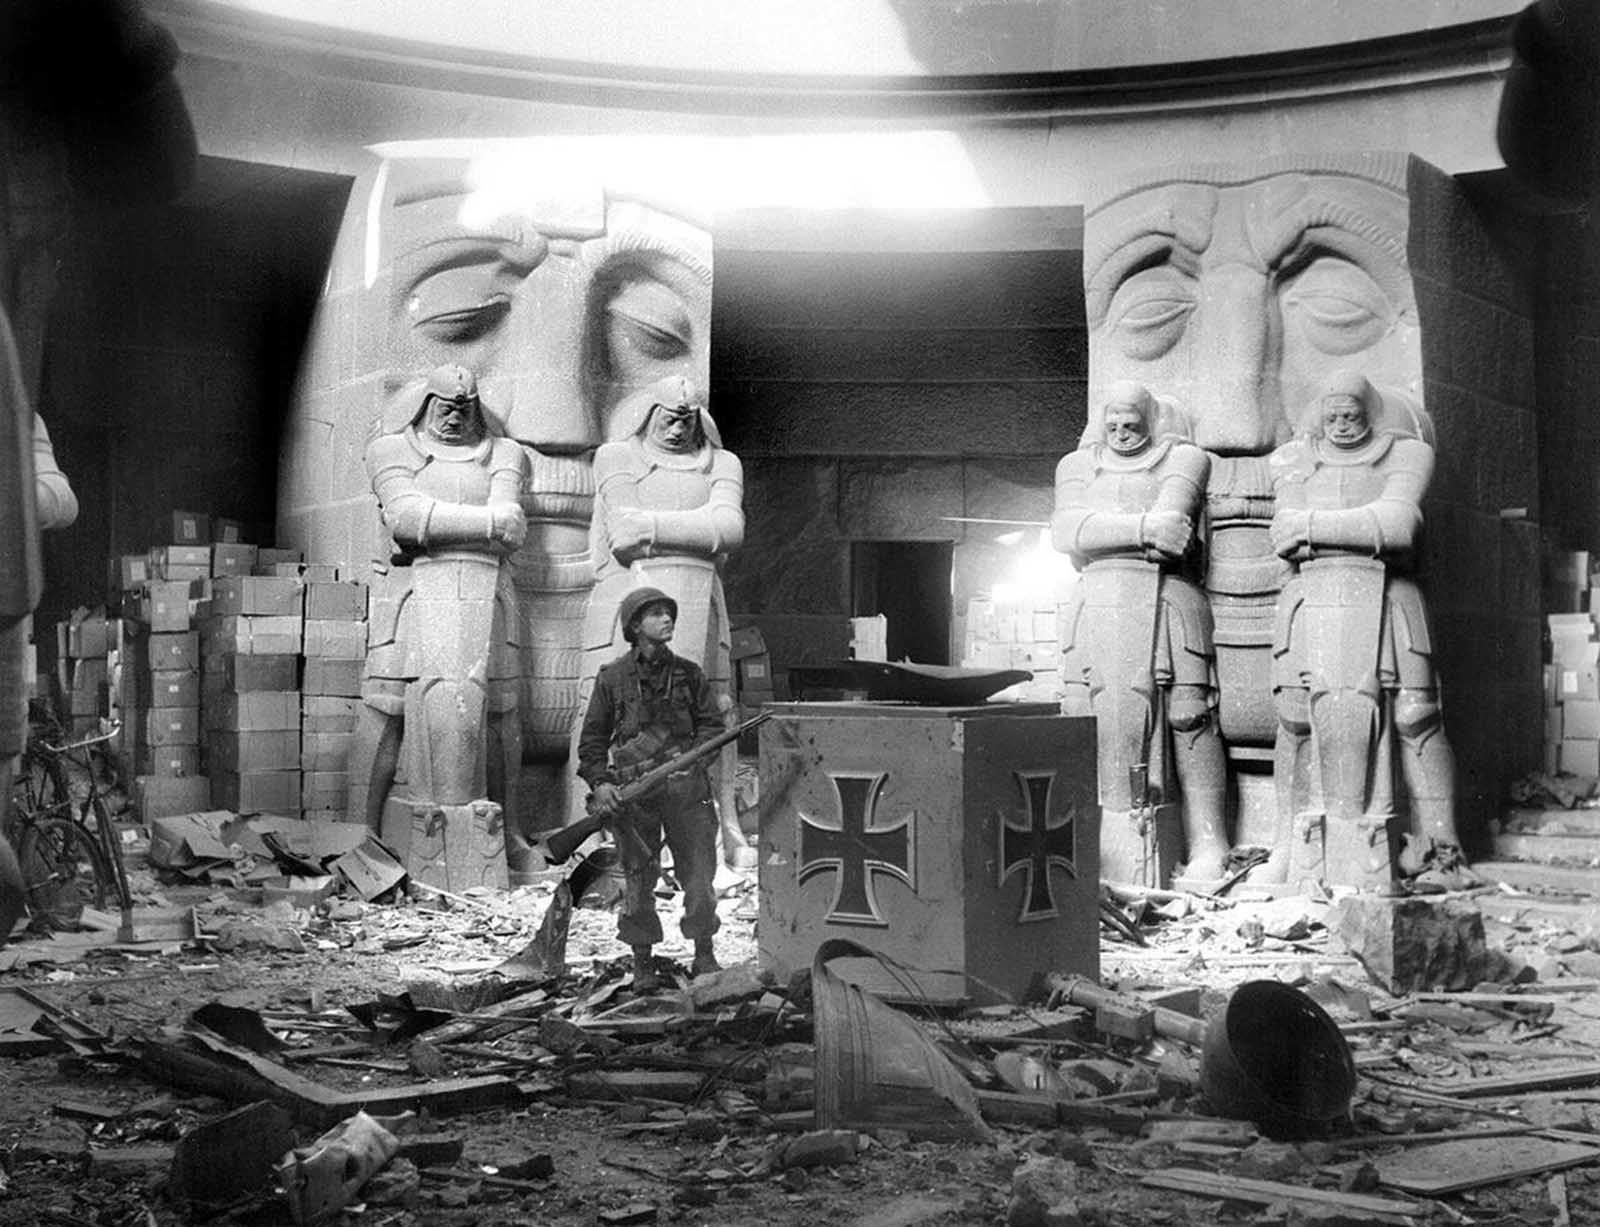 A U.S. soldier stands in the middle of rubble in the Monument of the Battle of the Nations in Leipzig after they attacked the city on April 18, 1945. The huge monument commemorating the defeat of Napoleon in 1813 was one of the last strongholds in the city to surrender. One hundred and fifty SS fanatics with ammunition and foodstuffs stored in the structure to last three months dug themselves in and were determined to hold out as long as their supplies would allow. American First Army artillery eventually blasted the SS troops into surrender.